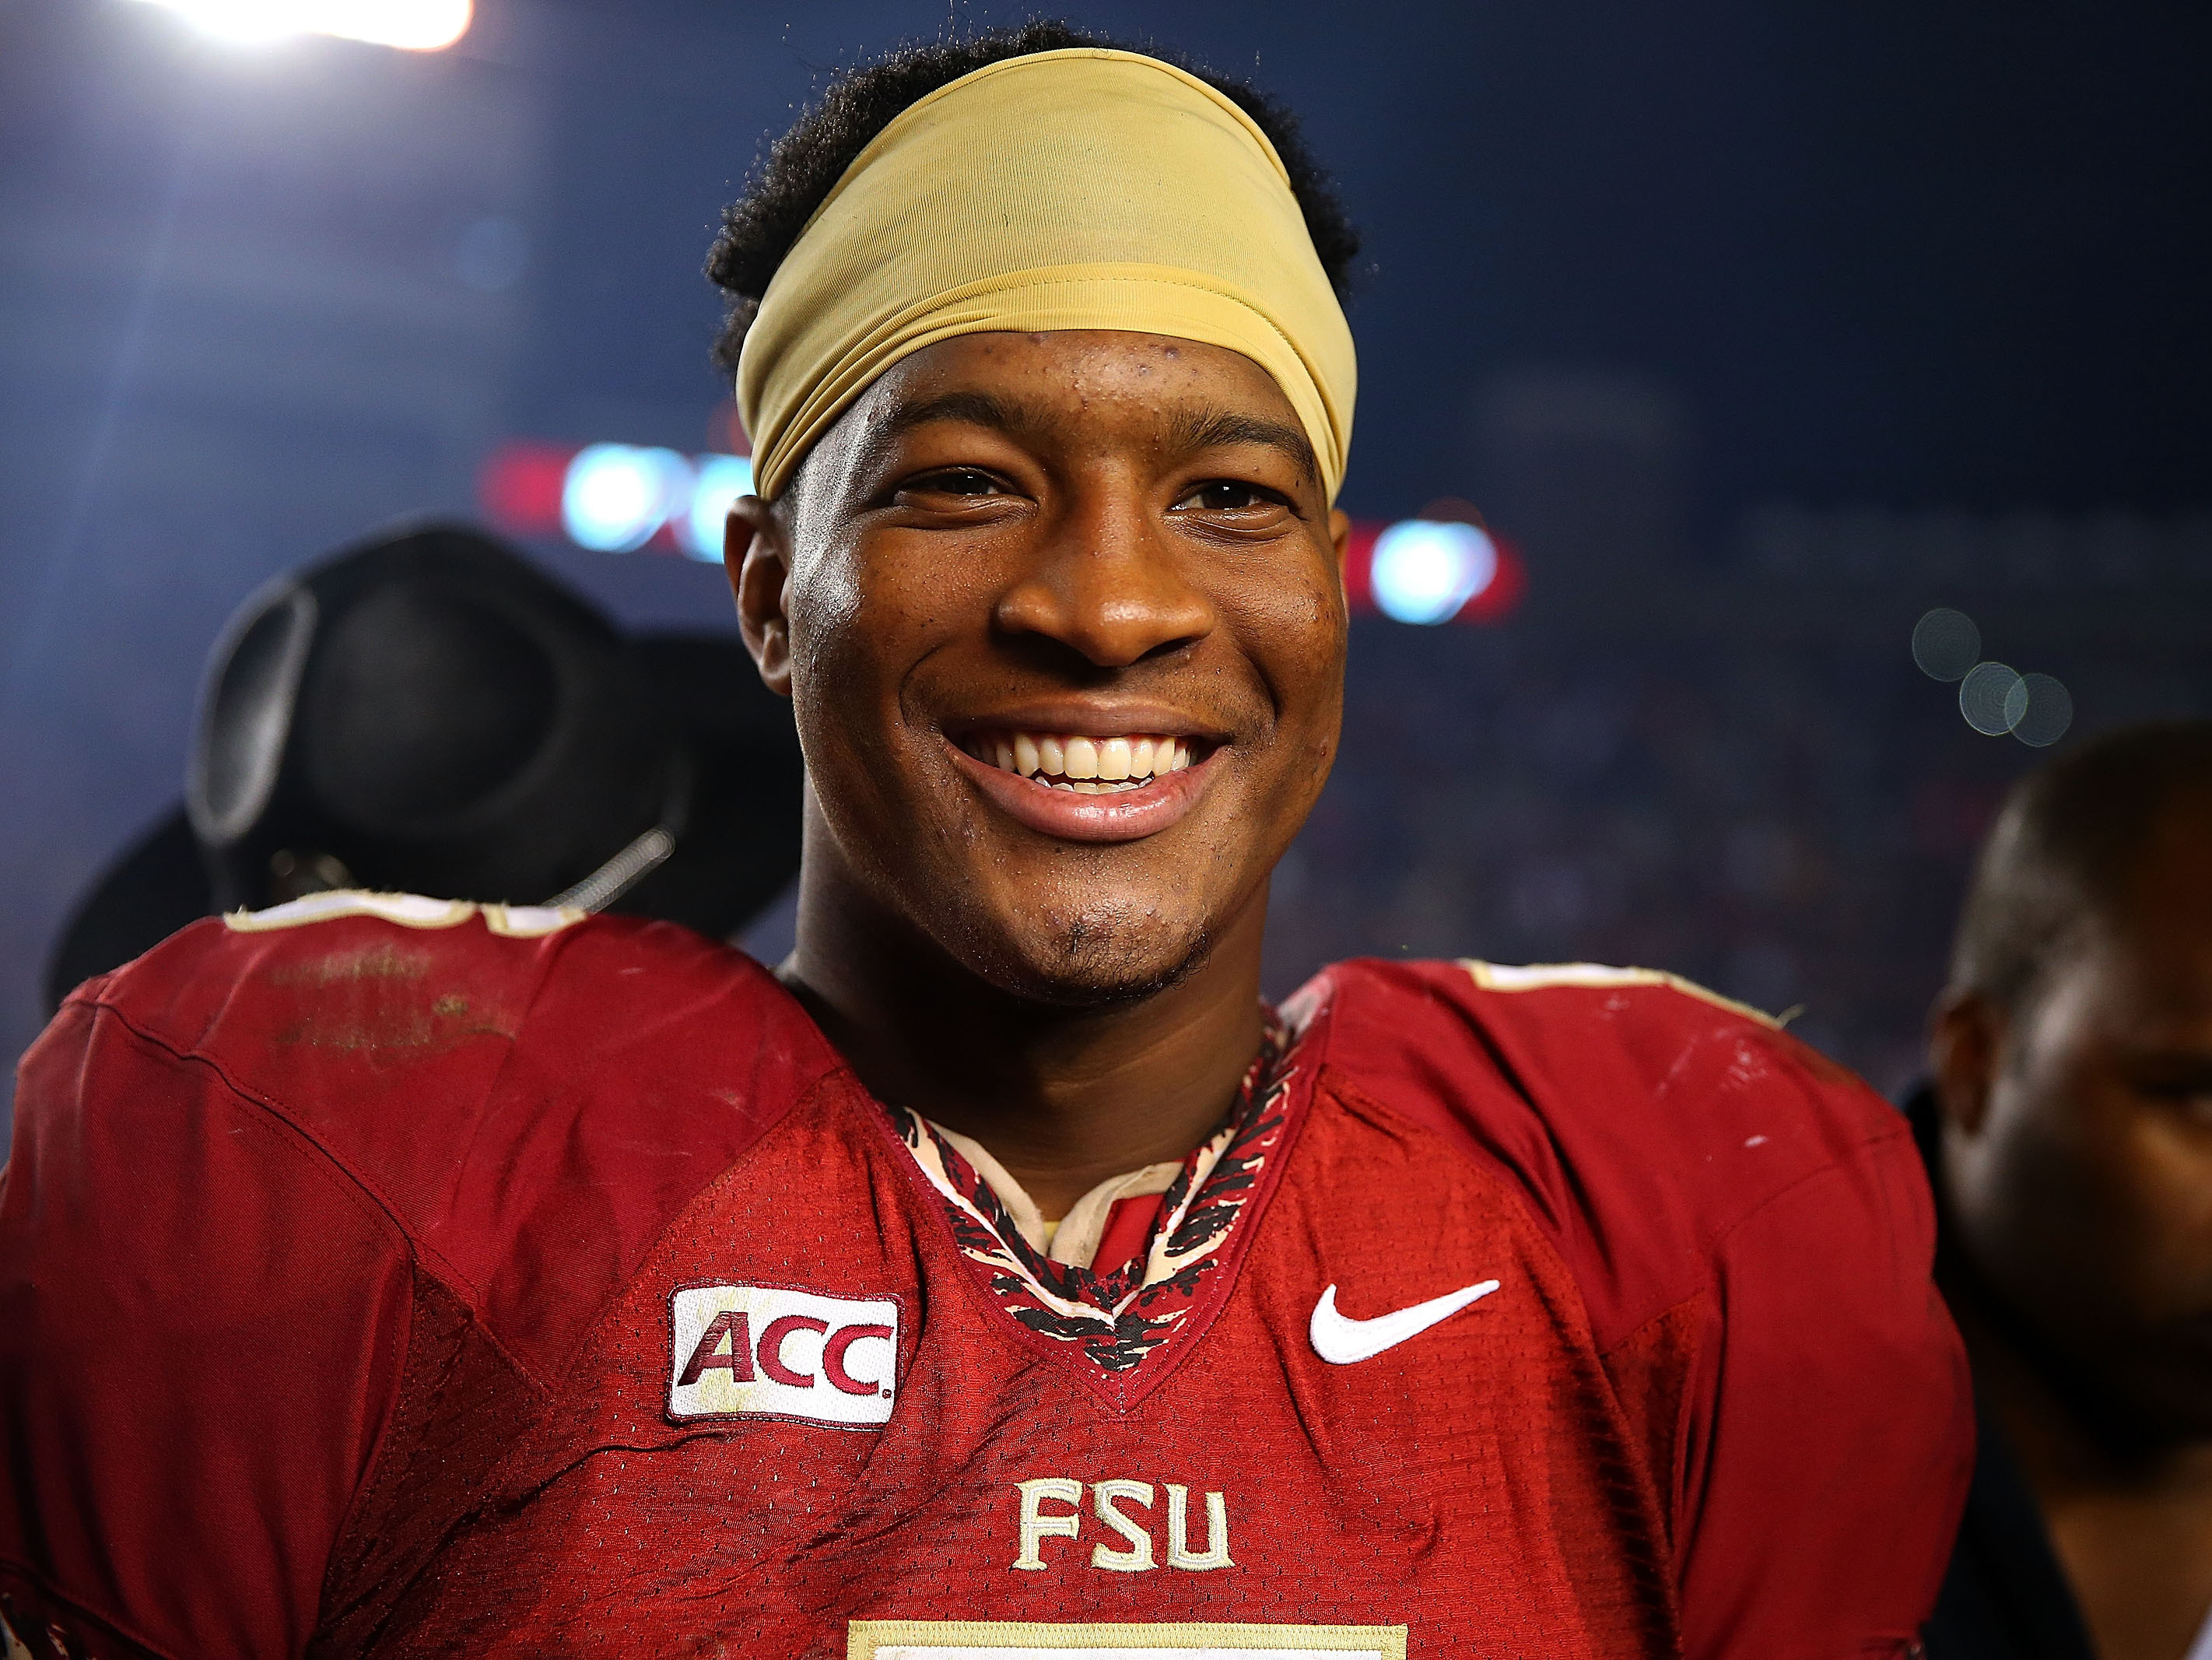 Conduct Hearing Clears Florida State QB Of Sex Allegations